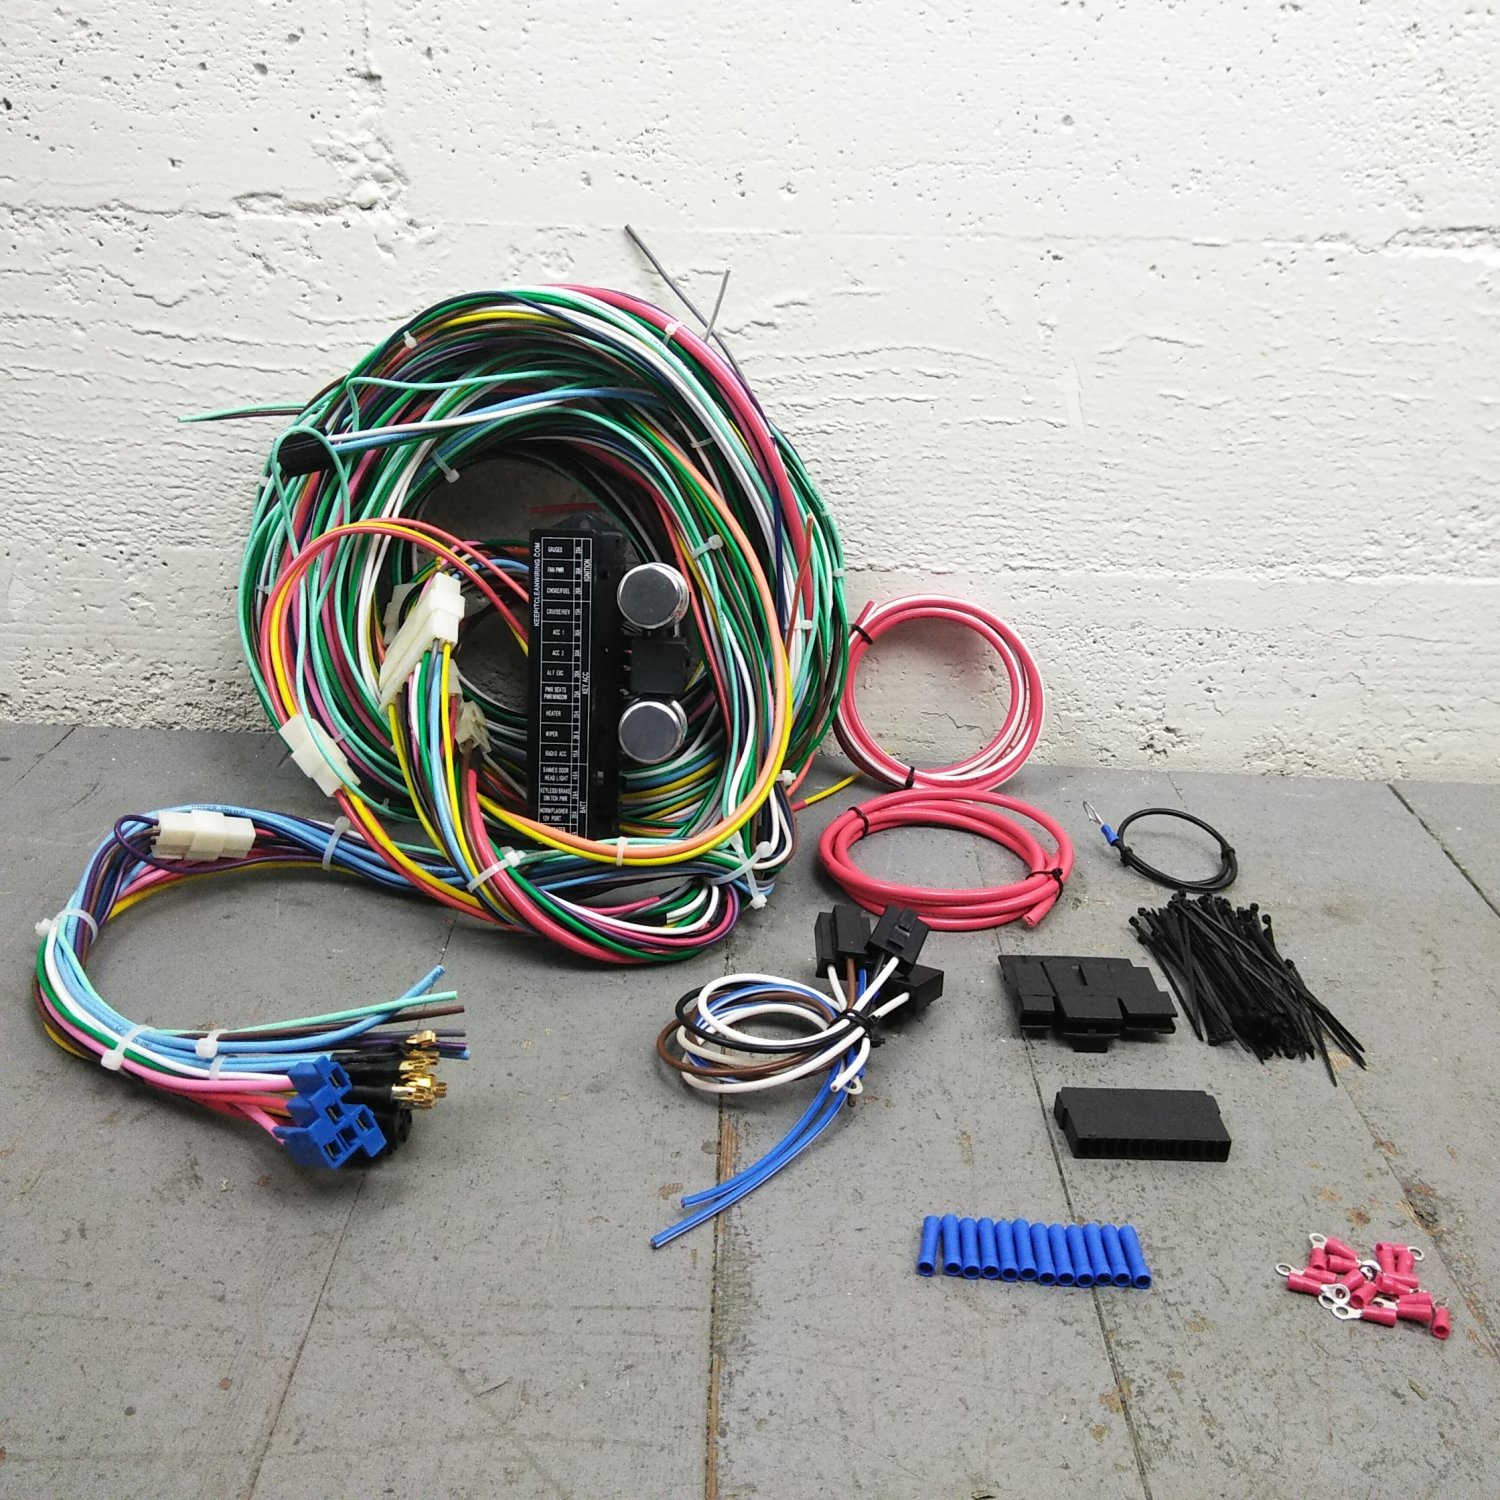 1984 camaro painless wiring harness wiring library1967 1969 chevrolet camaro wire harness upgrade kit fits painless terminal new bar_product_description_c